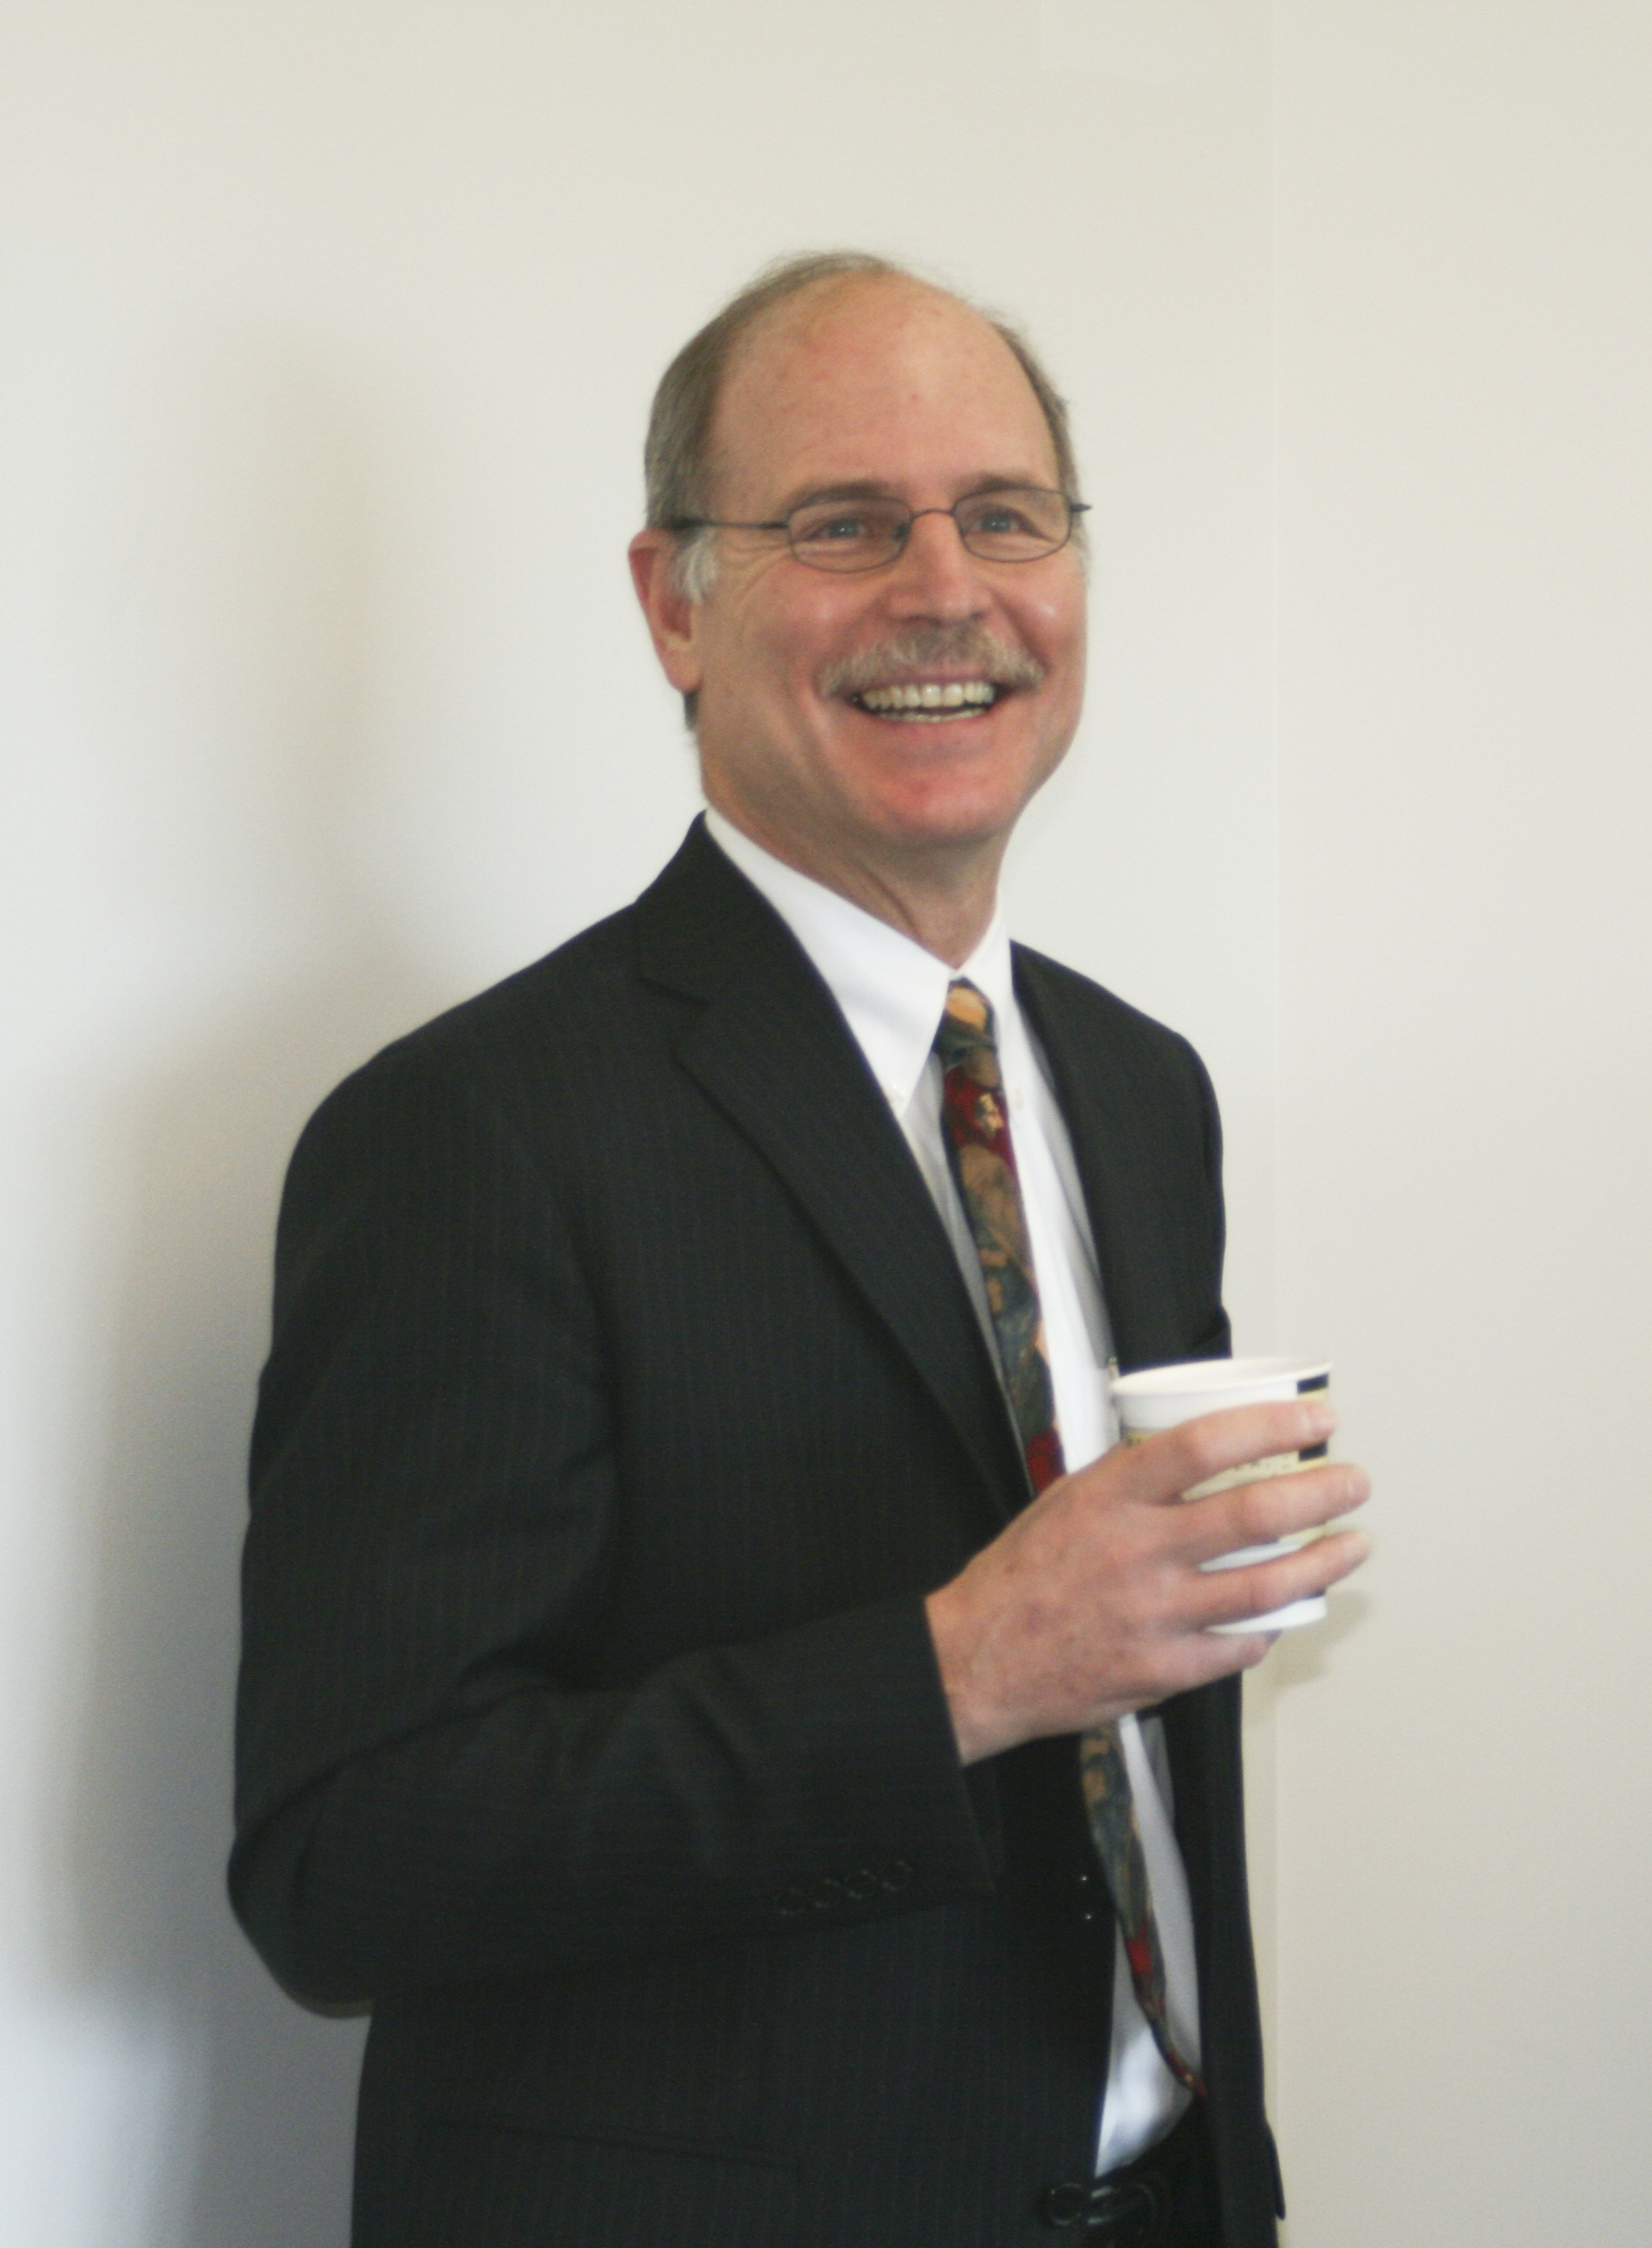 Tom Peterson, Provost and Executive Vice Chancellor